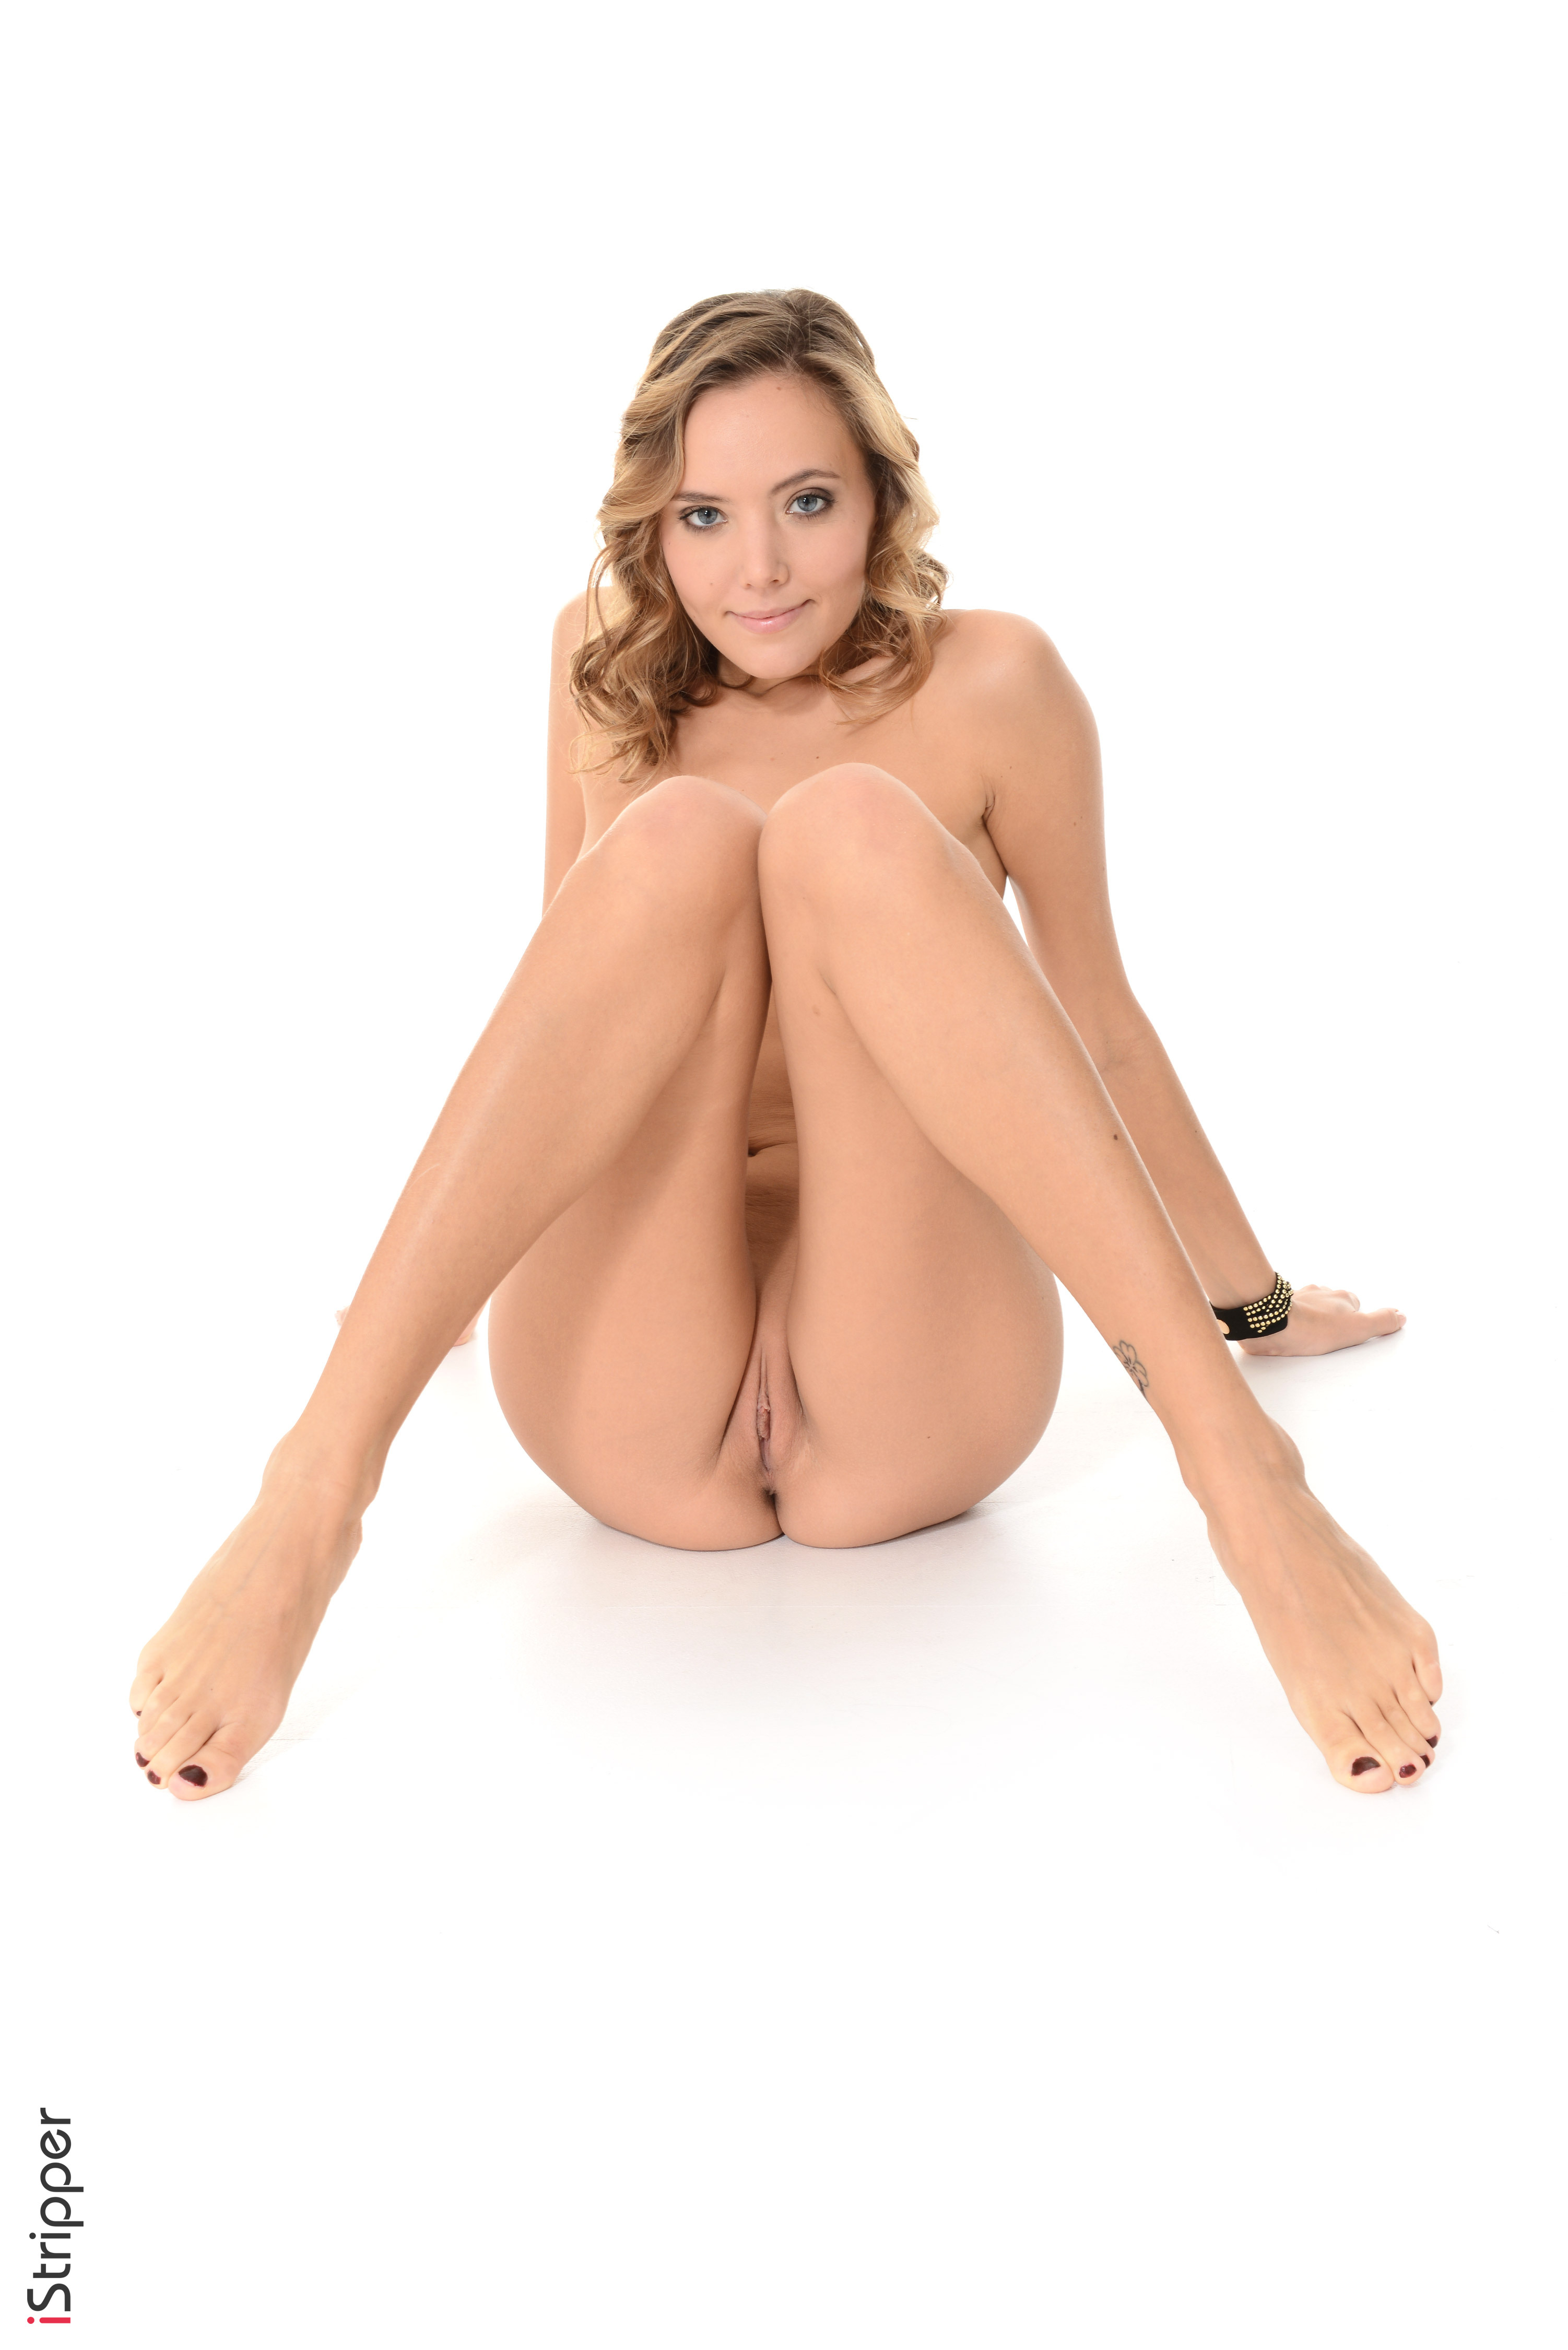 sexy nude wallpapers hd